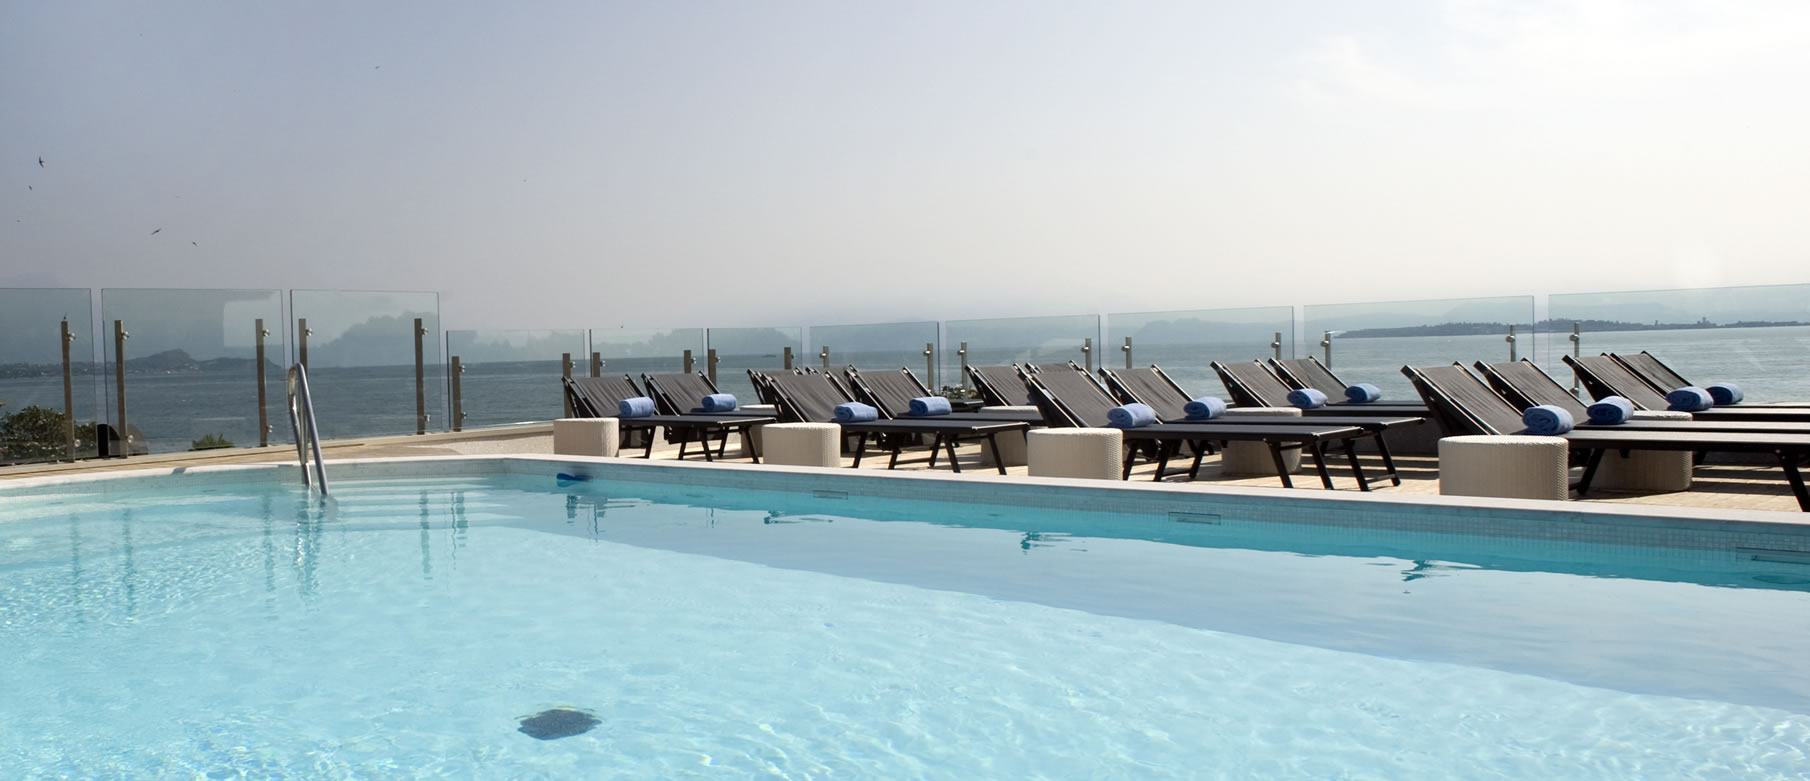 4 Star Hotel With Swimming Pool Desenzano Park Hotel With Panoramic Swimming Pool Garda Lake